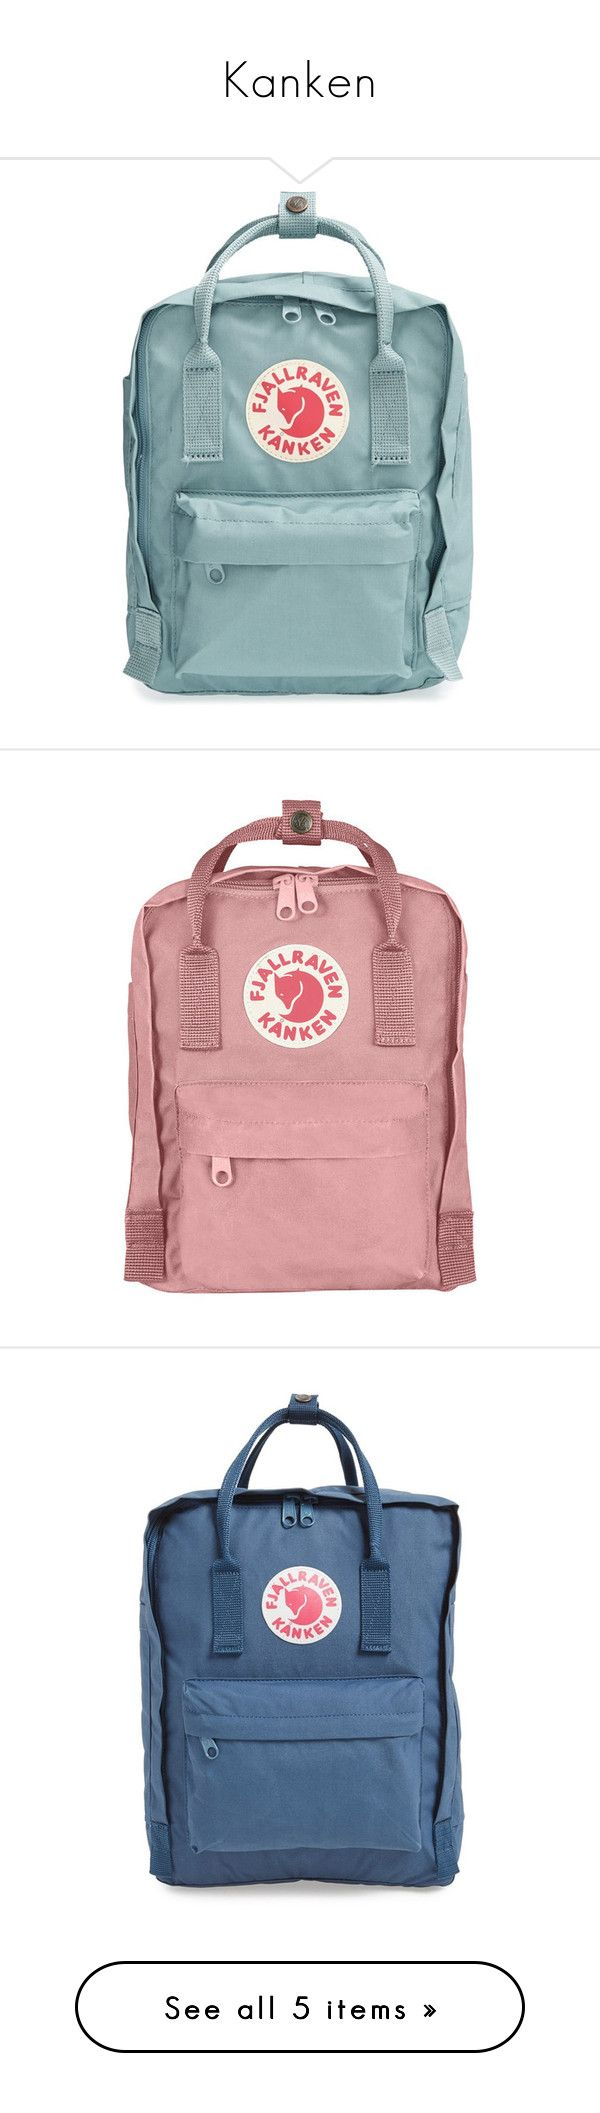 """""""Kanken"""" by holunderbluete ❤ liked on Polyvore featuring bags, backpacks, accessories, fillers, sky blue, fjallraven backpack, blue bag, mini backpack, mini rucksack and handle bag"""